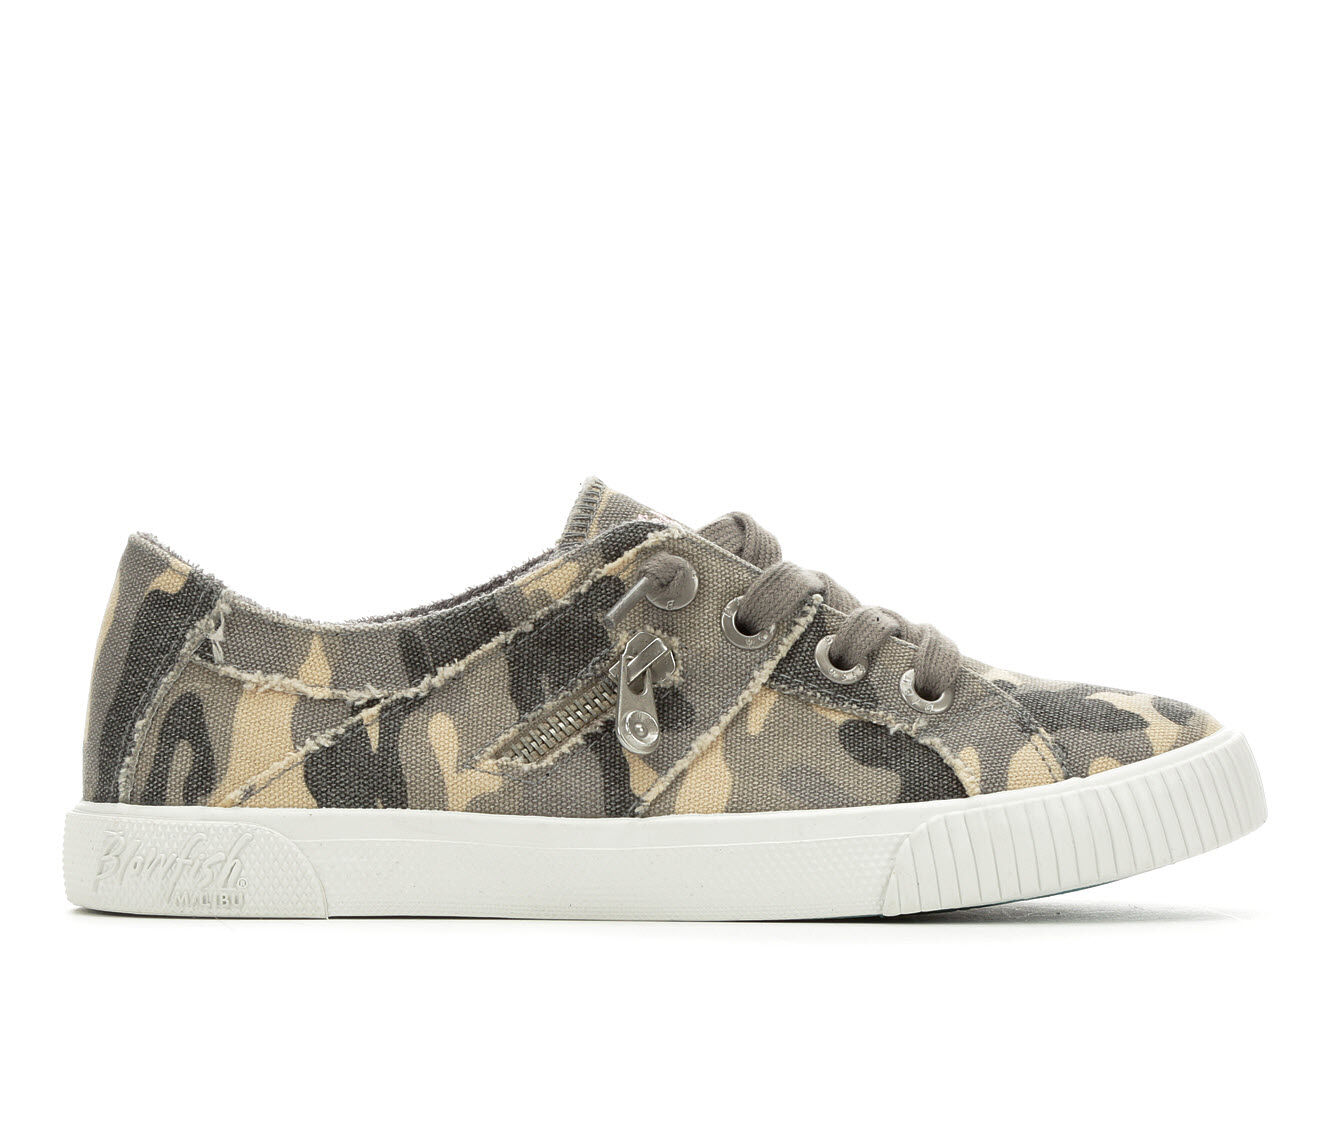 Women's Blowfish Malibu Fruit Sneakers Camo